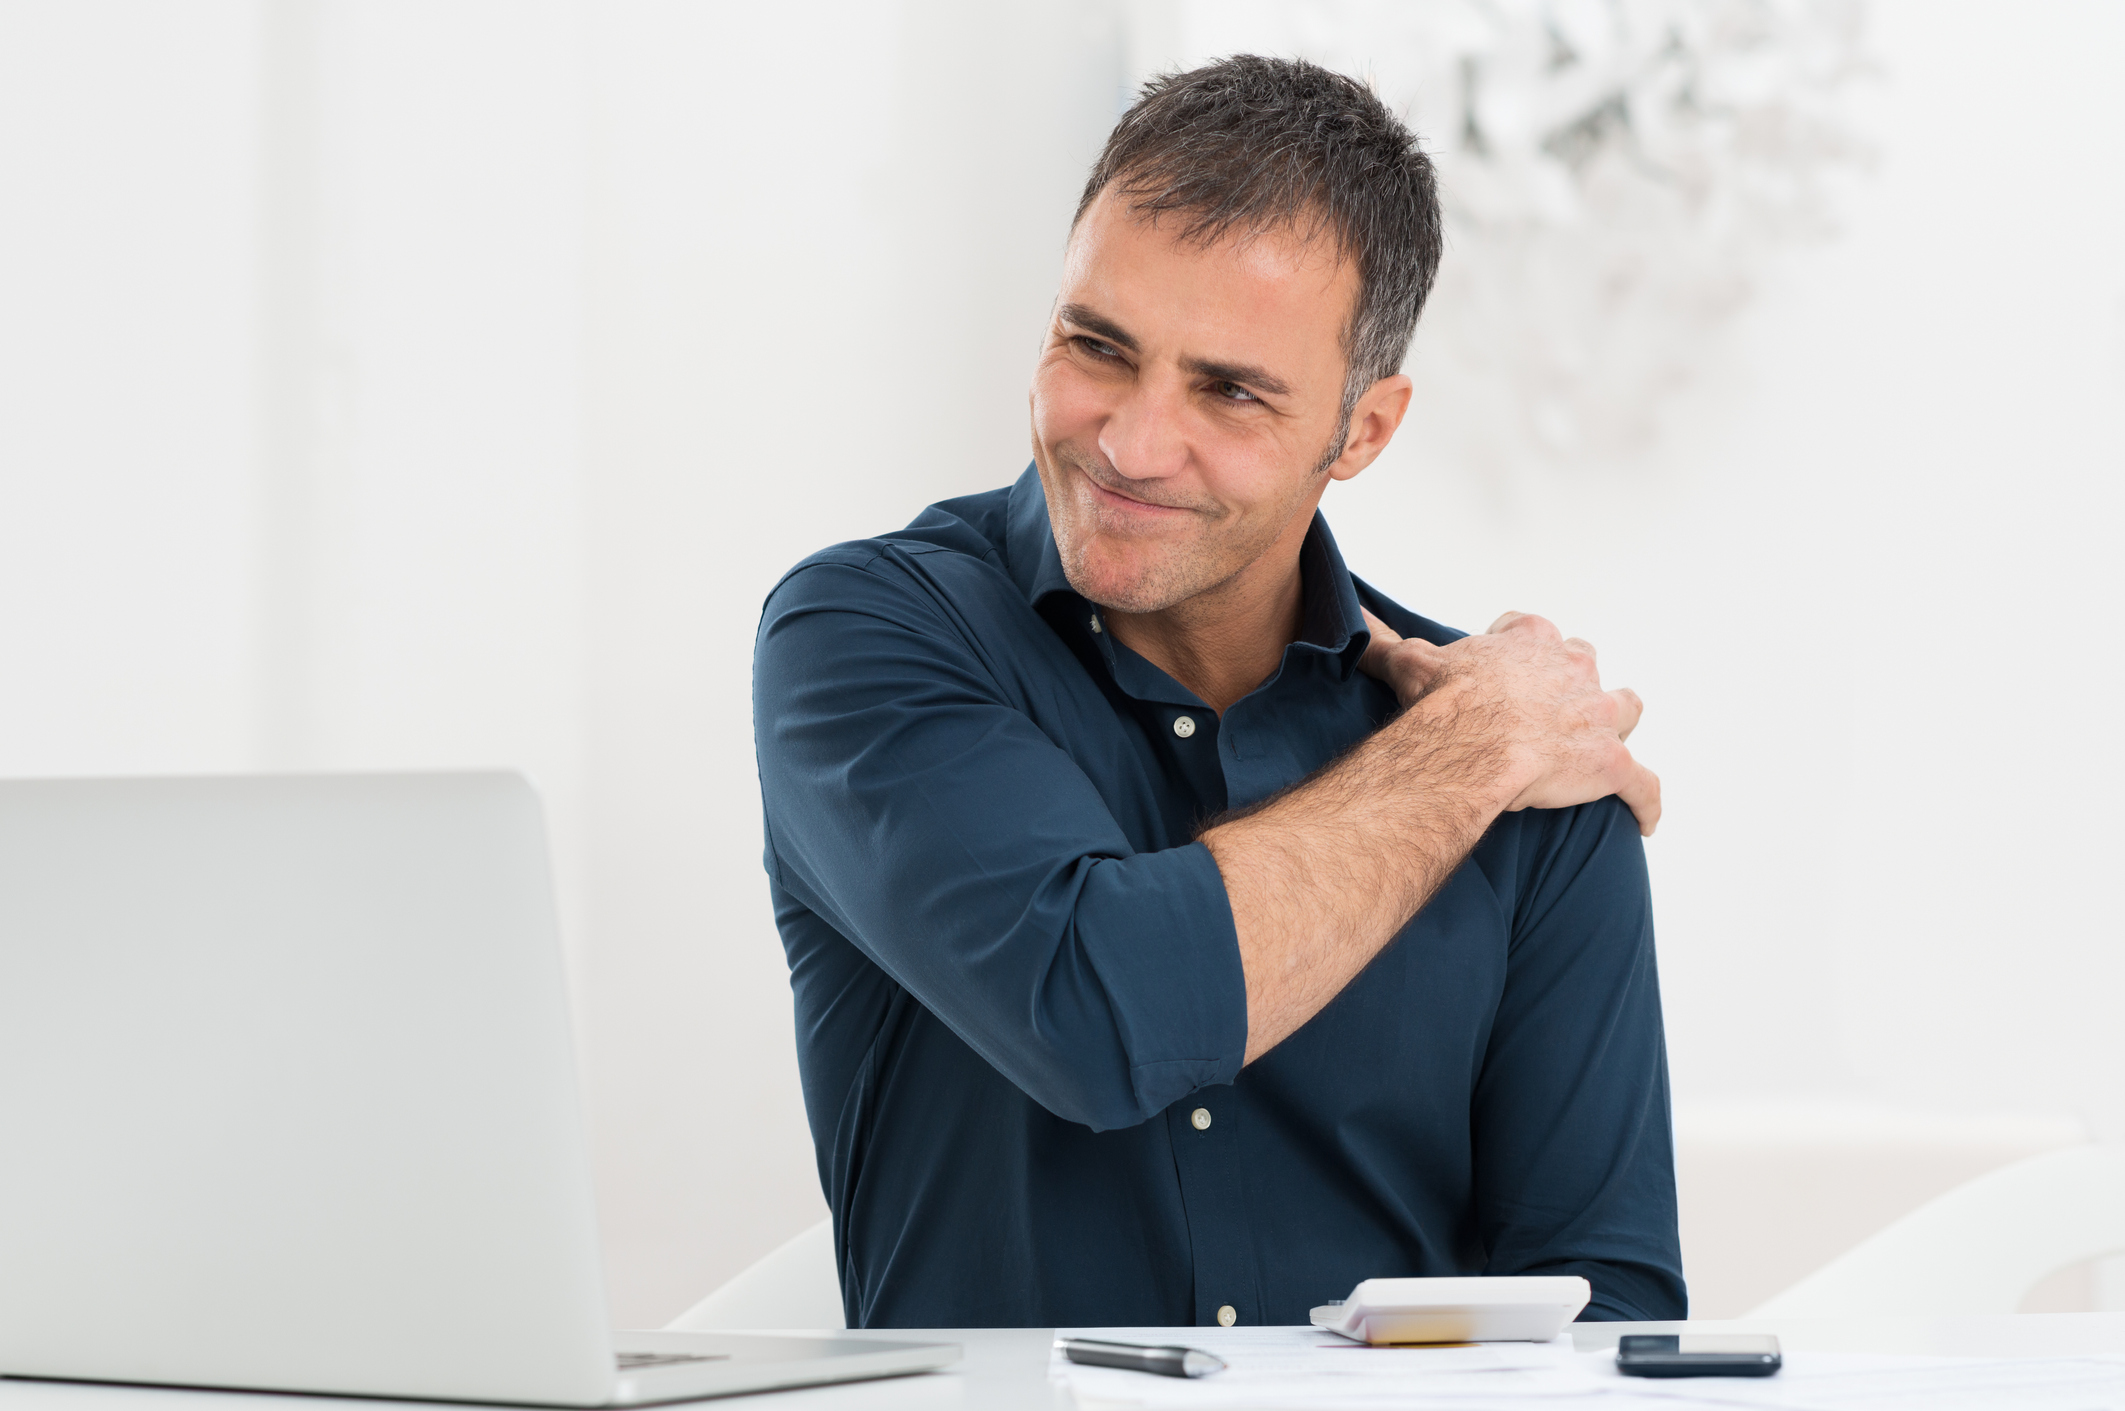 The weird connection between shoulder pain and heart trouble